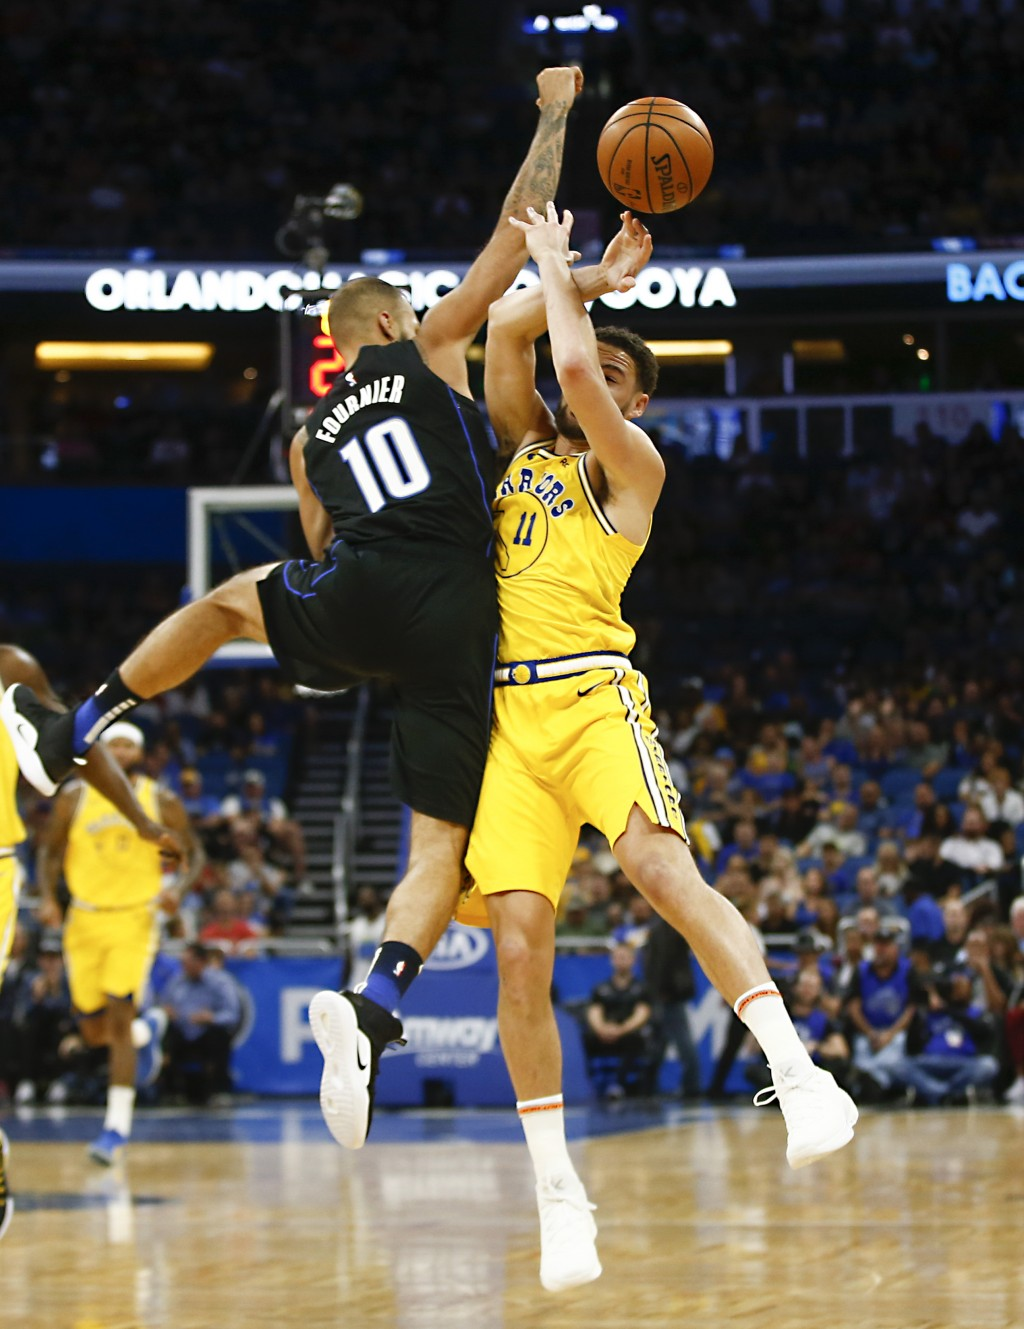 Orlando Magic guard Evan Fournier (10) fouls Golden State Warriors guard Klay Thompson (11) during the first quarter of an NBA basketball game in Orla...